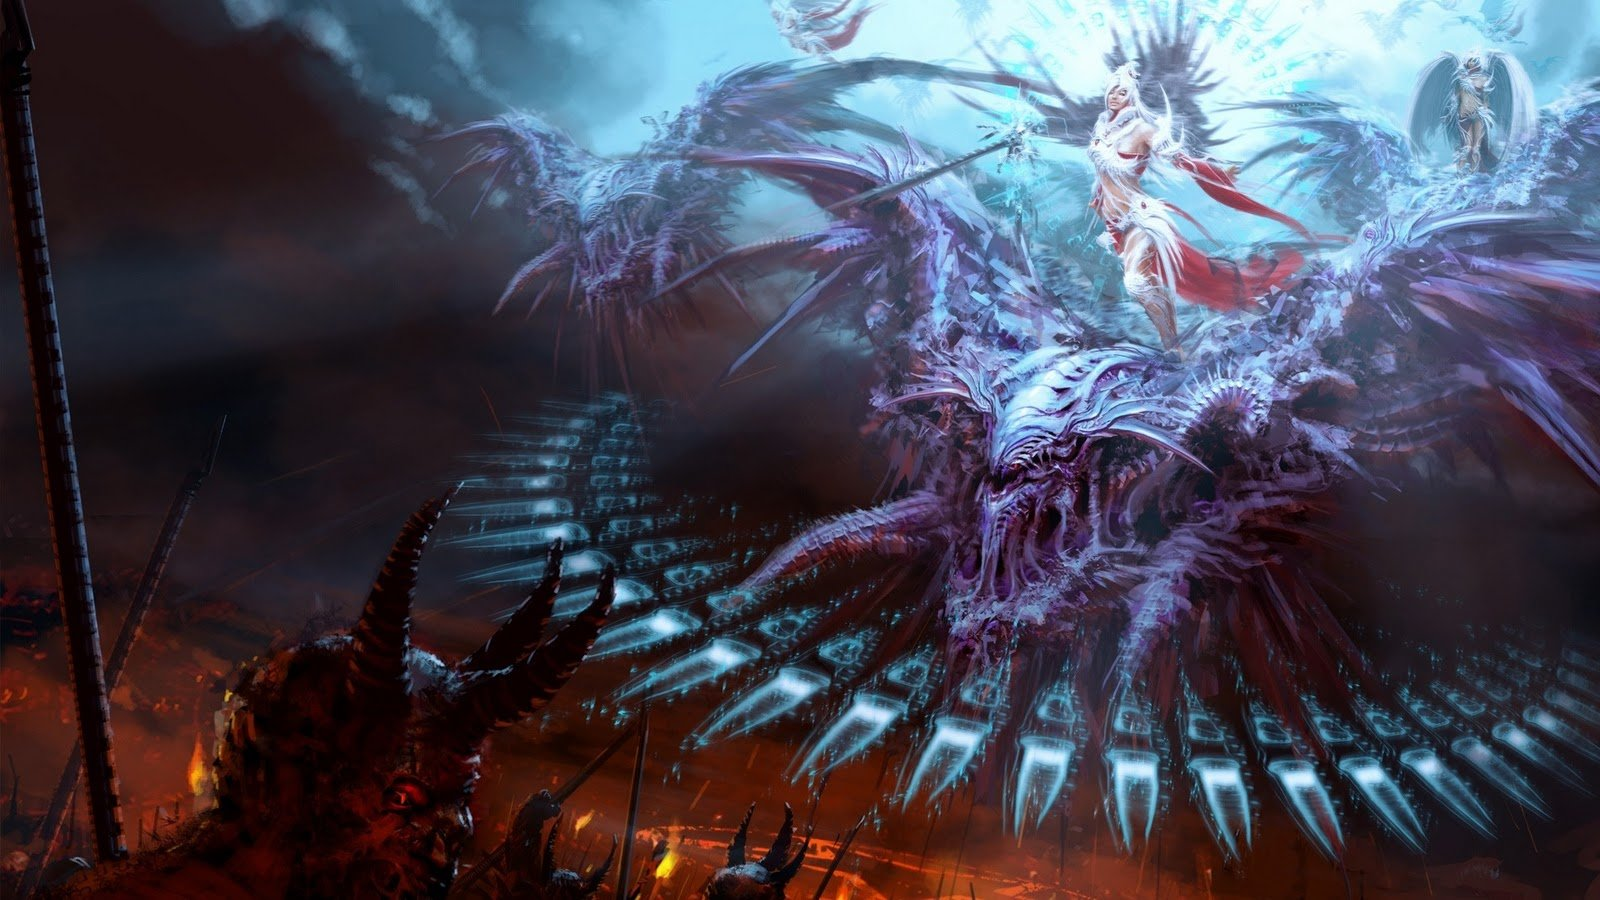 Angels Vs Demons Amazing 3D Art God Vs Devil Epic HD Wallpaper   Anny 1600x900